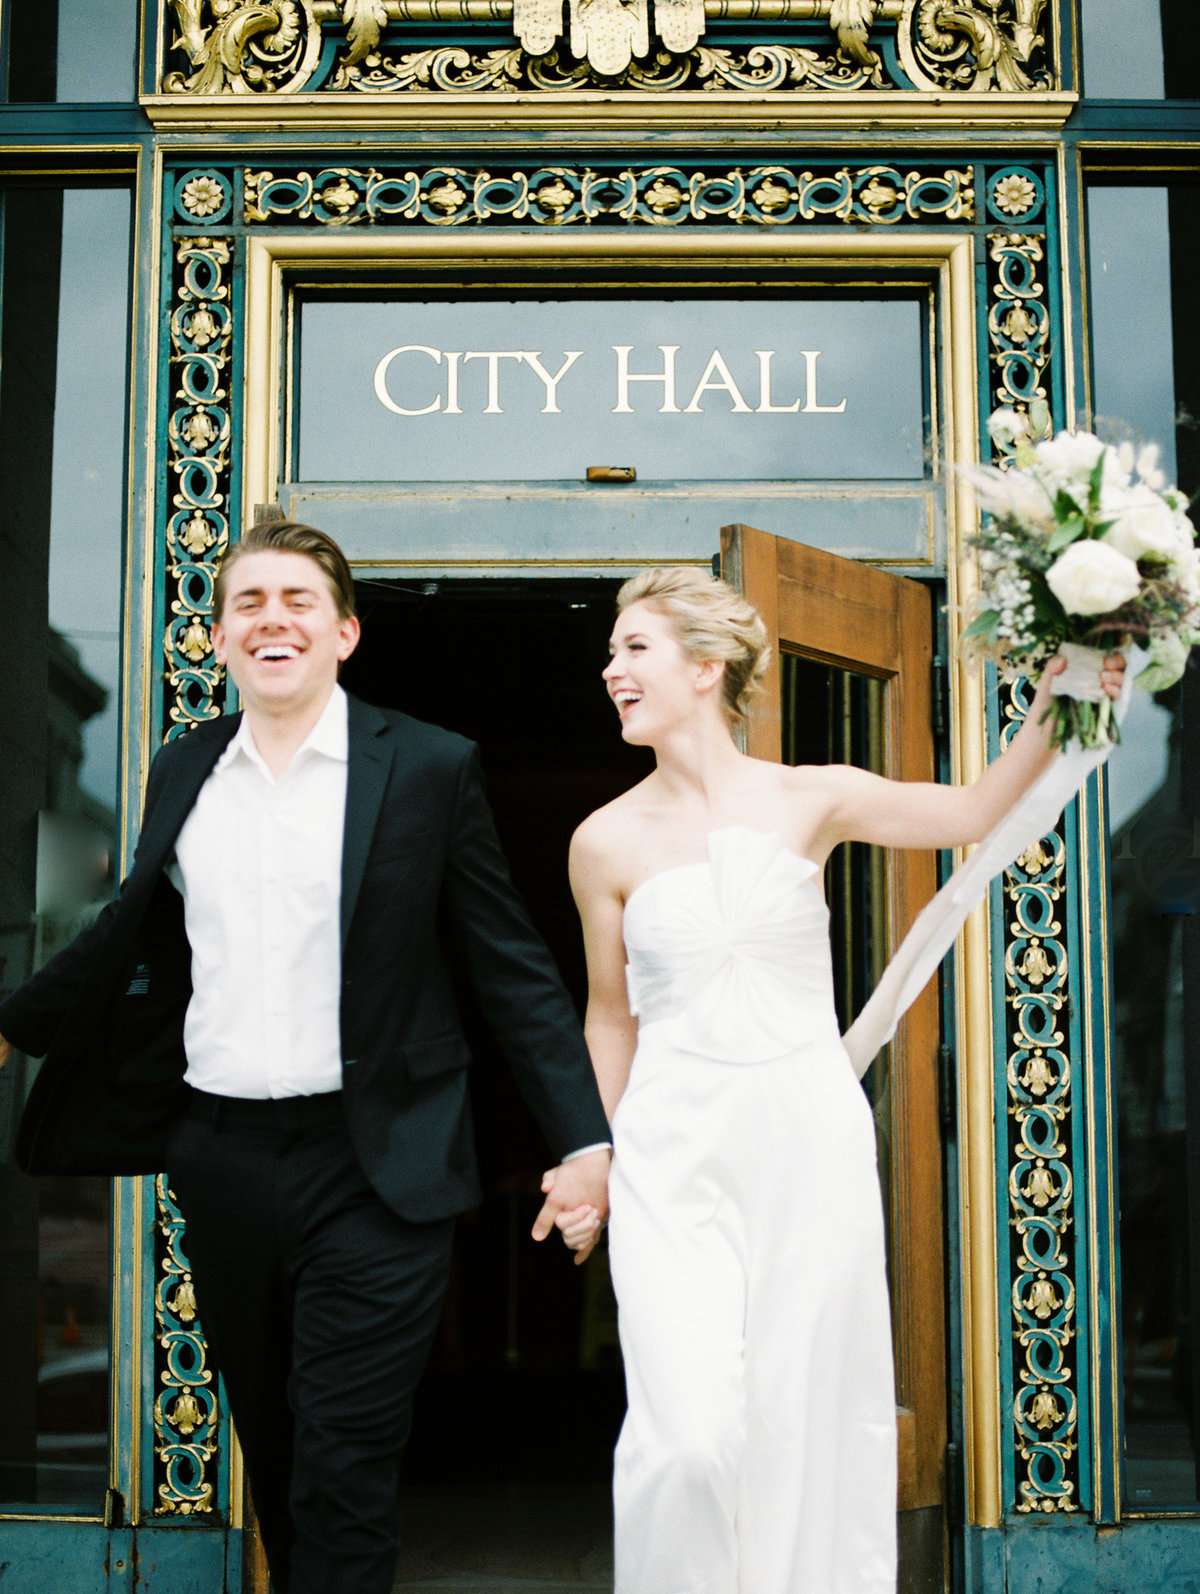 SanFranciscoCityHallWeddingPhotographer_SanFranciscoCityHallWedding_2019-Andrew_and_Ada_Photography-587